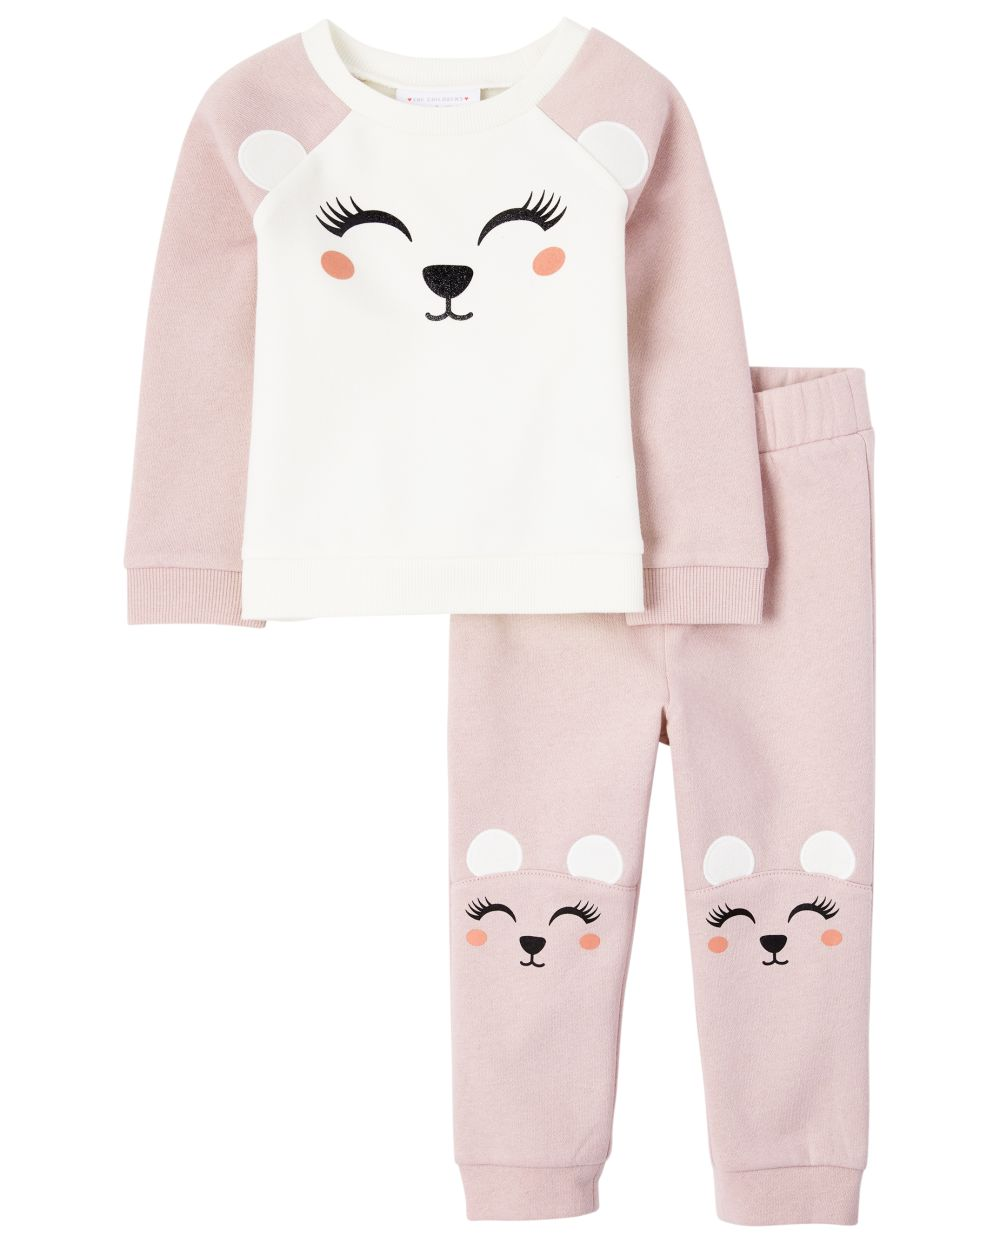 Toddler Girls Polar Bear Outfit Set